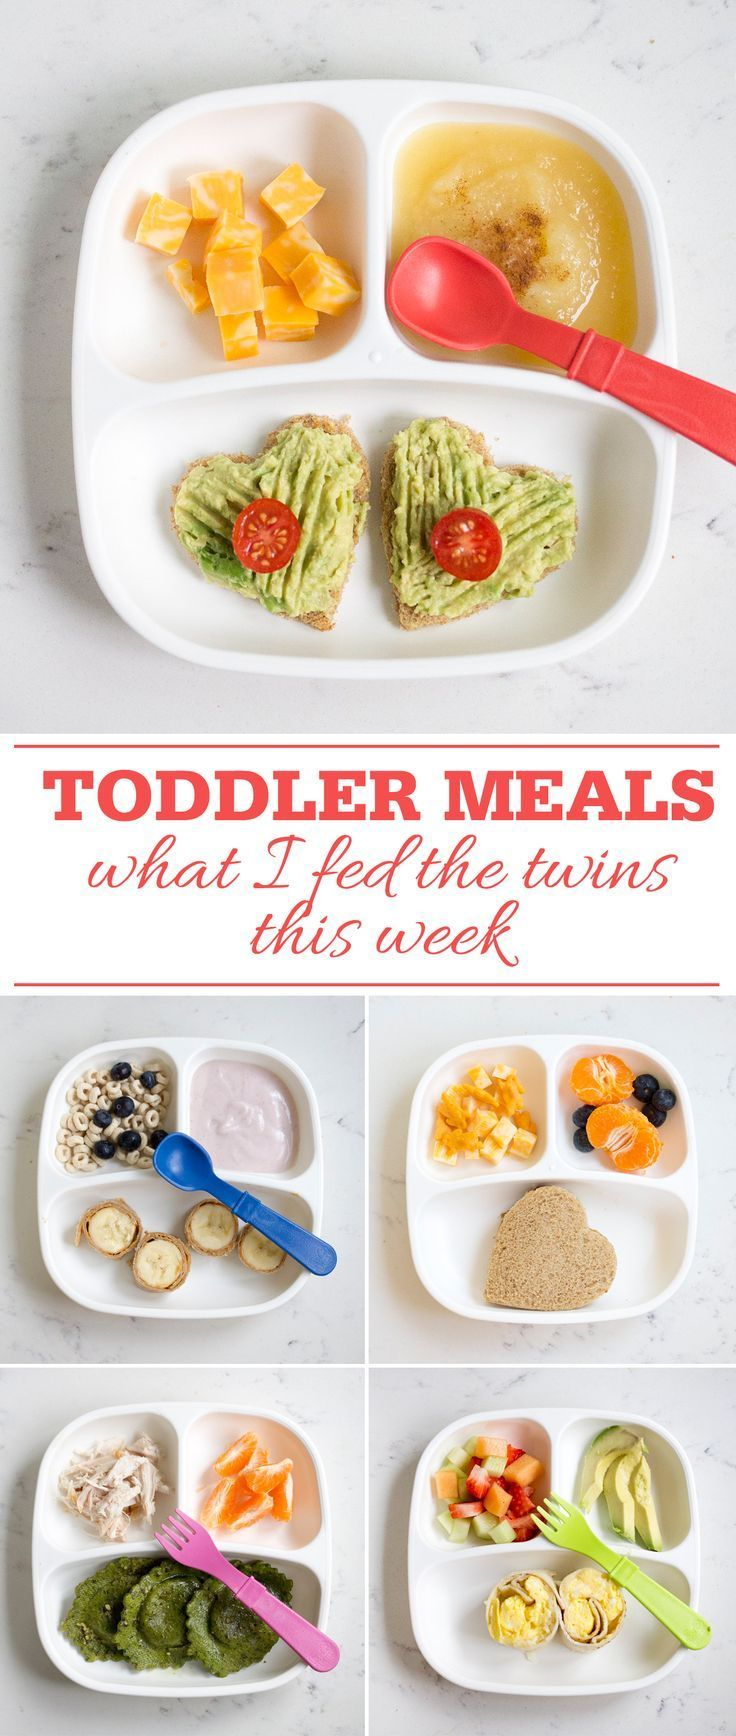 56 best babies and baby food images on pinterest baby foods baby toddler meals what i fed the twins this week forumfinder Gallery